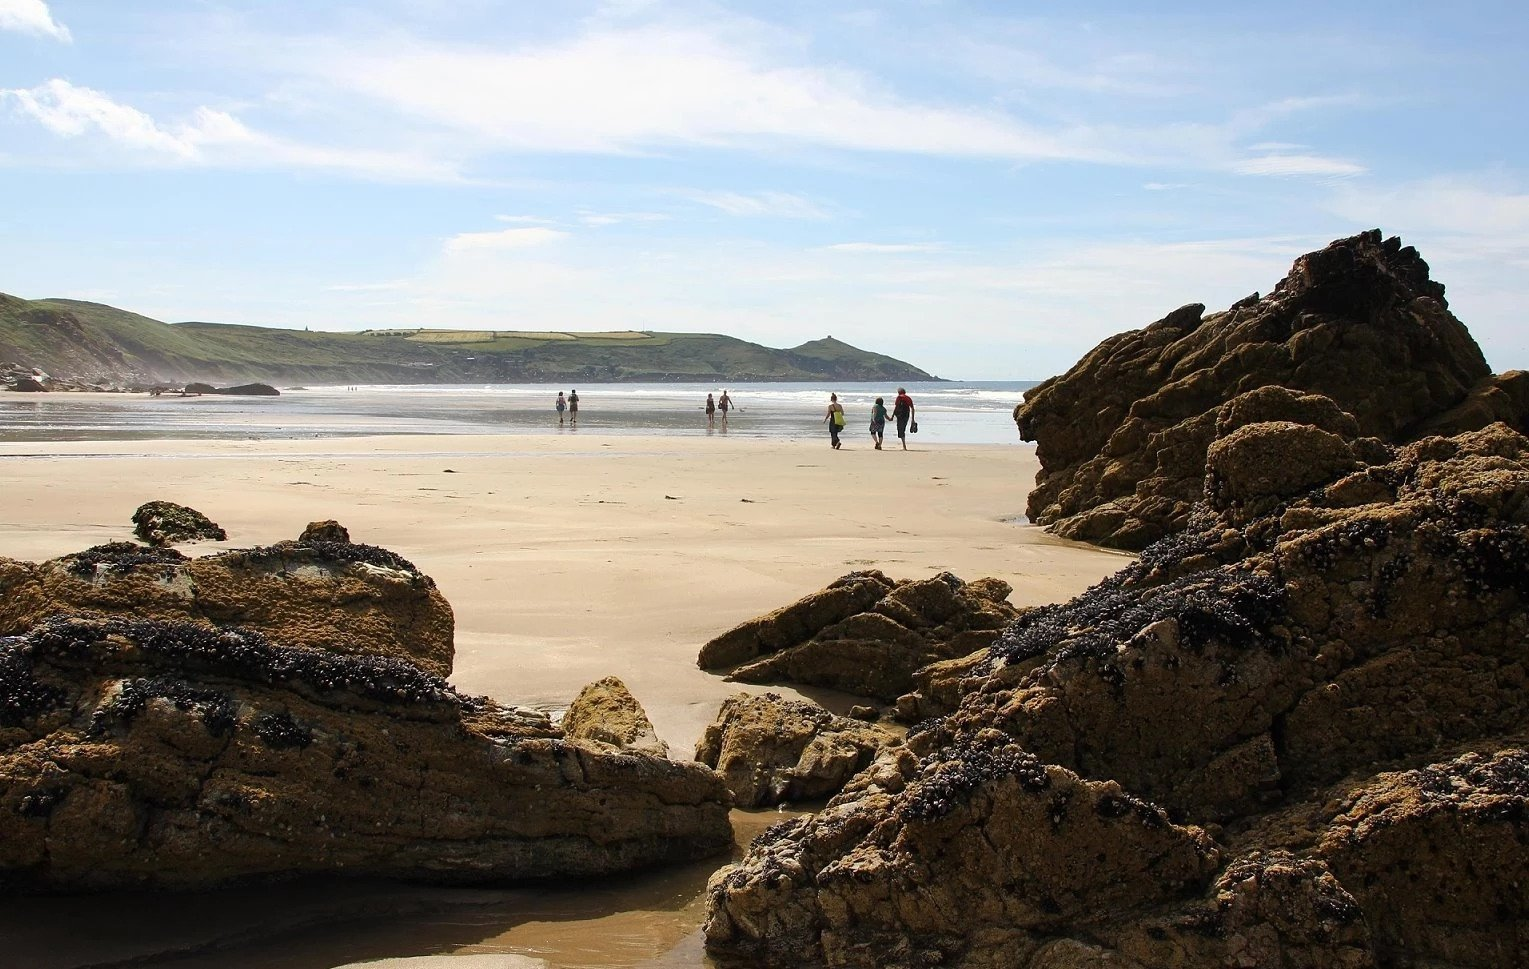 People strolling along one of Maker with Rame's golden sandy beaches at Whitsand Bay